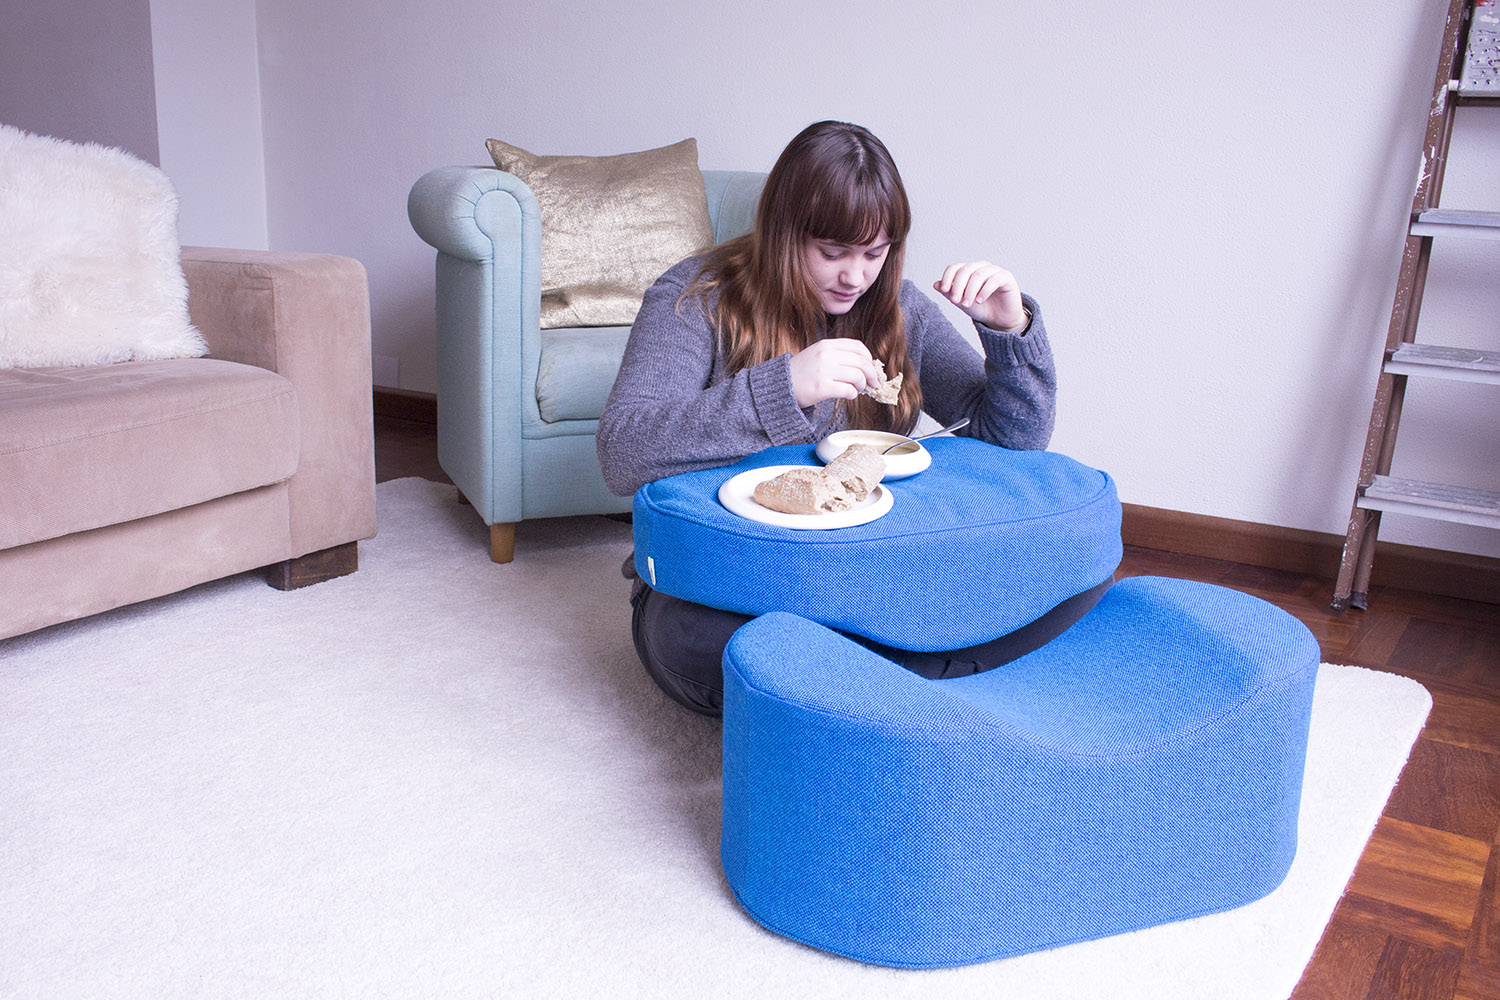 Loneeaters Sliding Cushion Eating.jpg